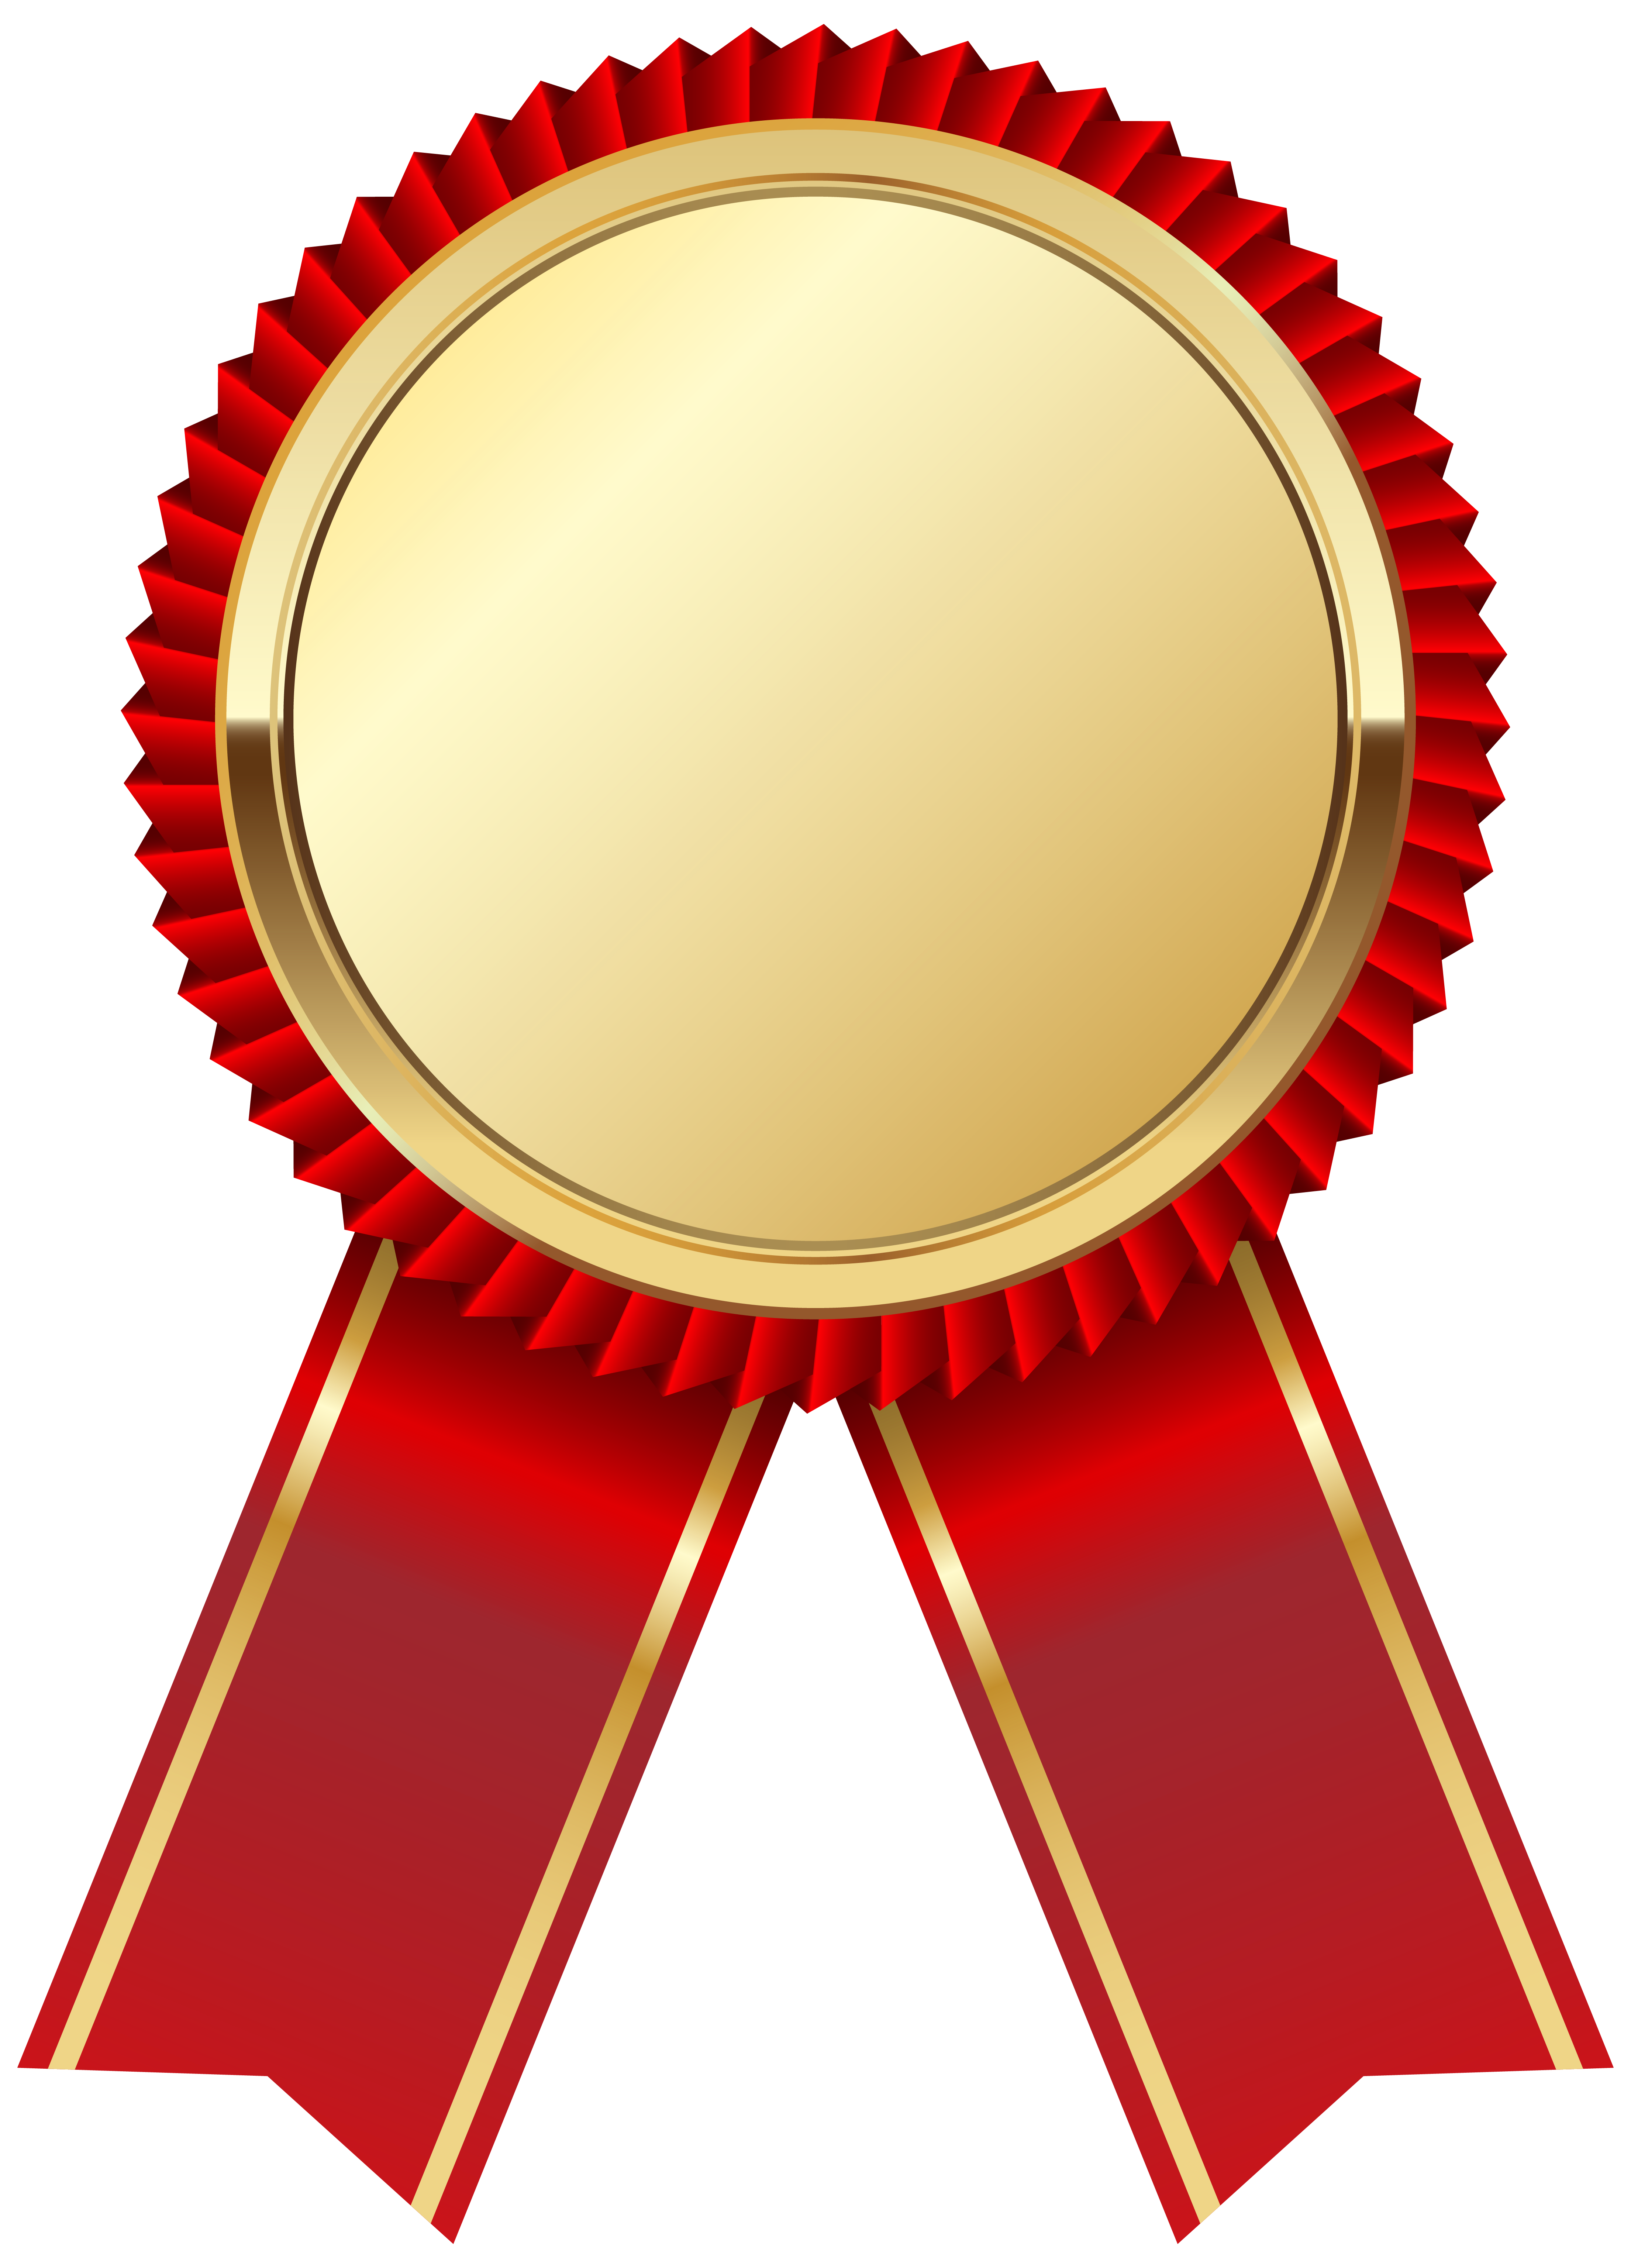 Medal drawing clipart black white. Free cliparts download clip